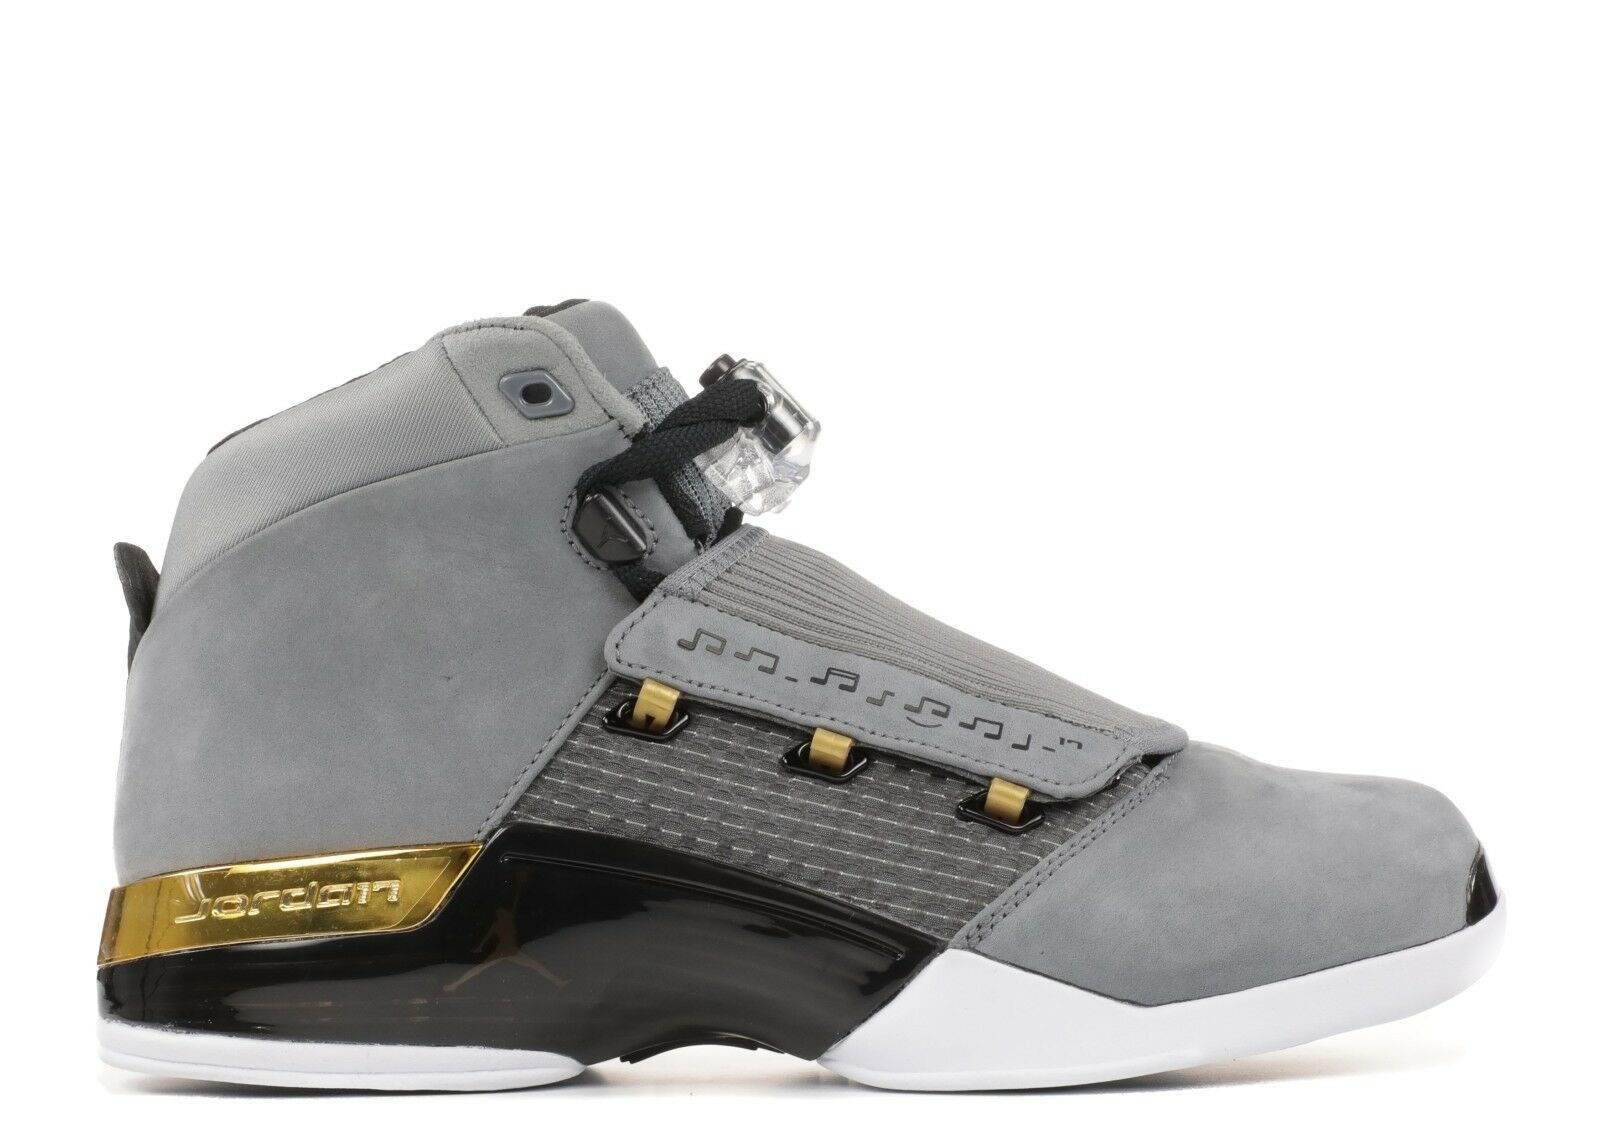 Nike Air Jordan 17 XVII Retro Trophy Room Cool Grey Gold Size 11. AH7963-023